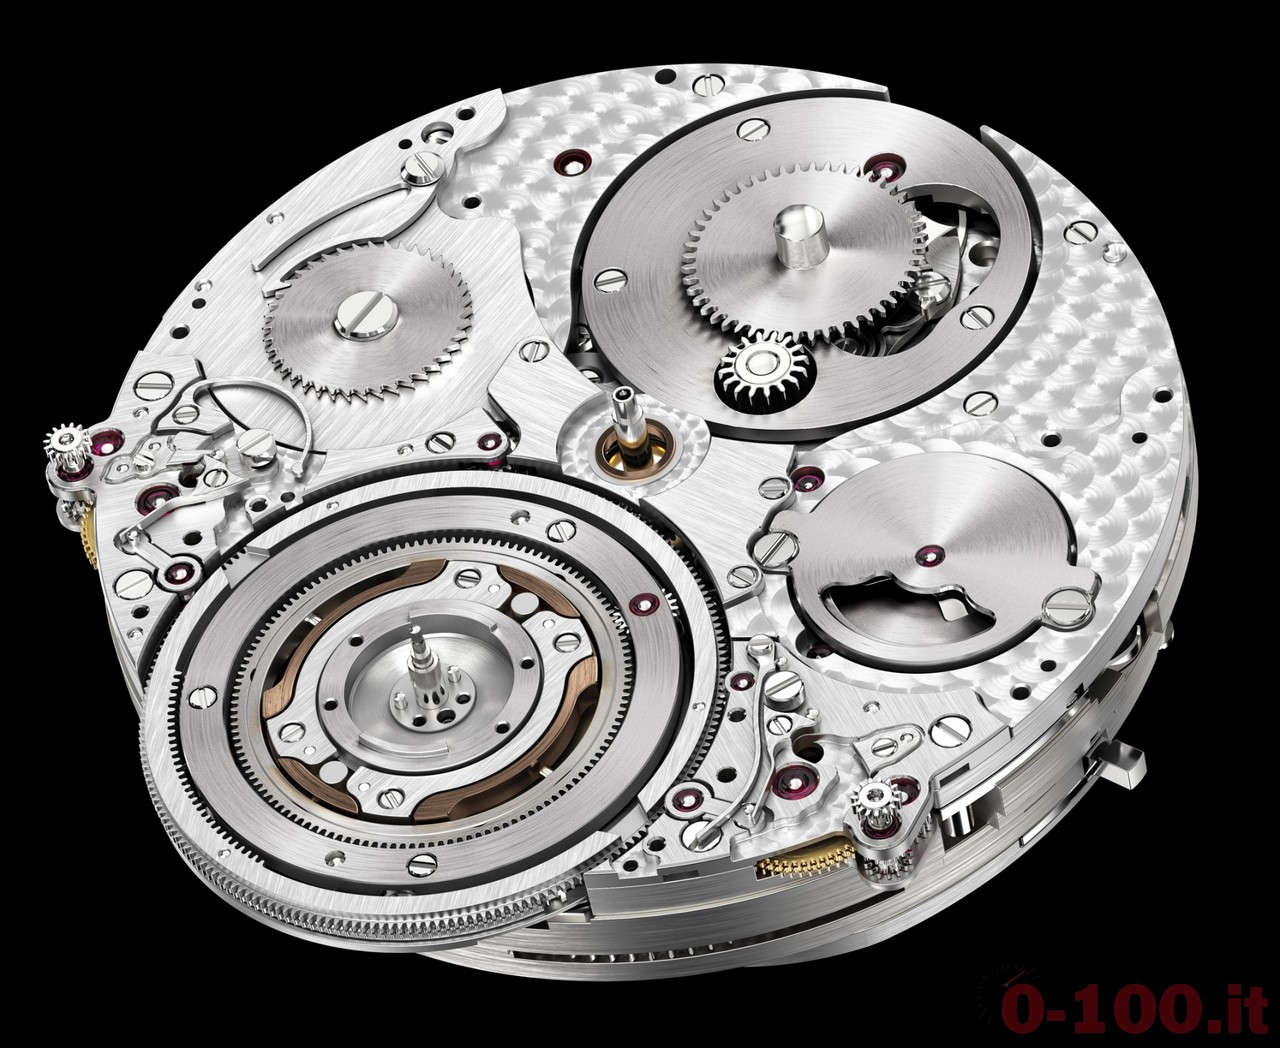 montblanc-metamorphosis-ii-ref-112442-limited-edition-0-100_3